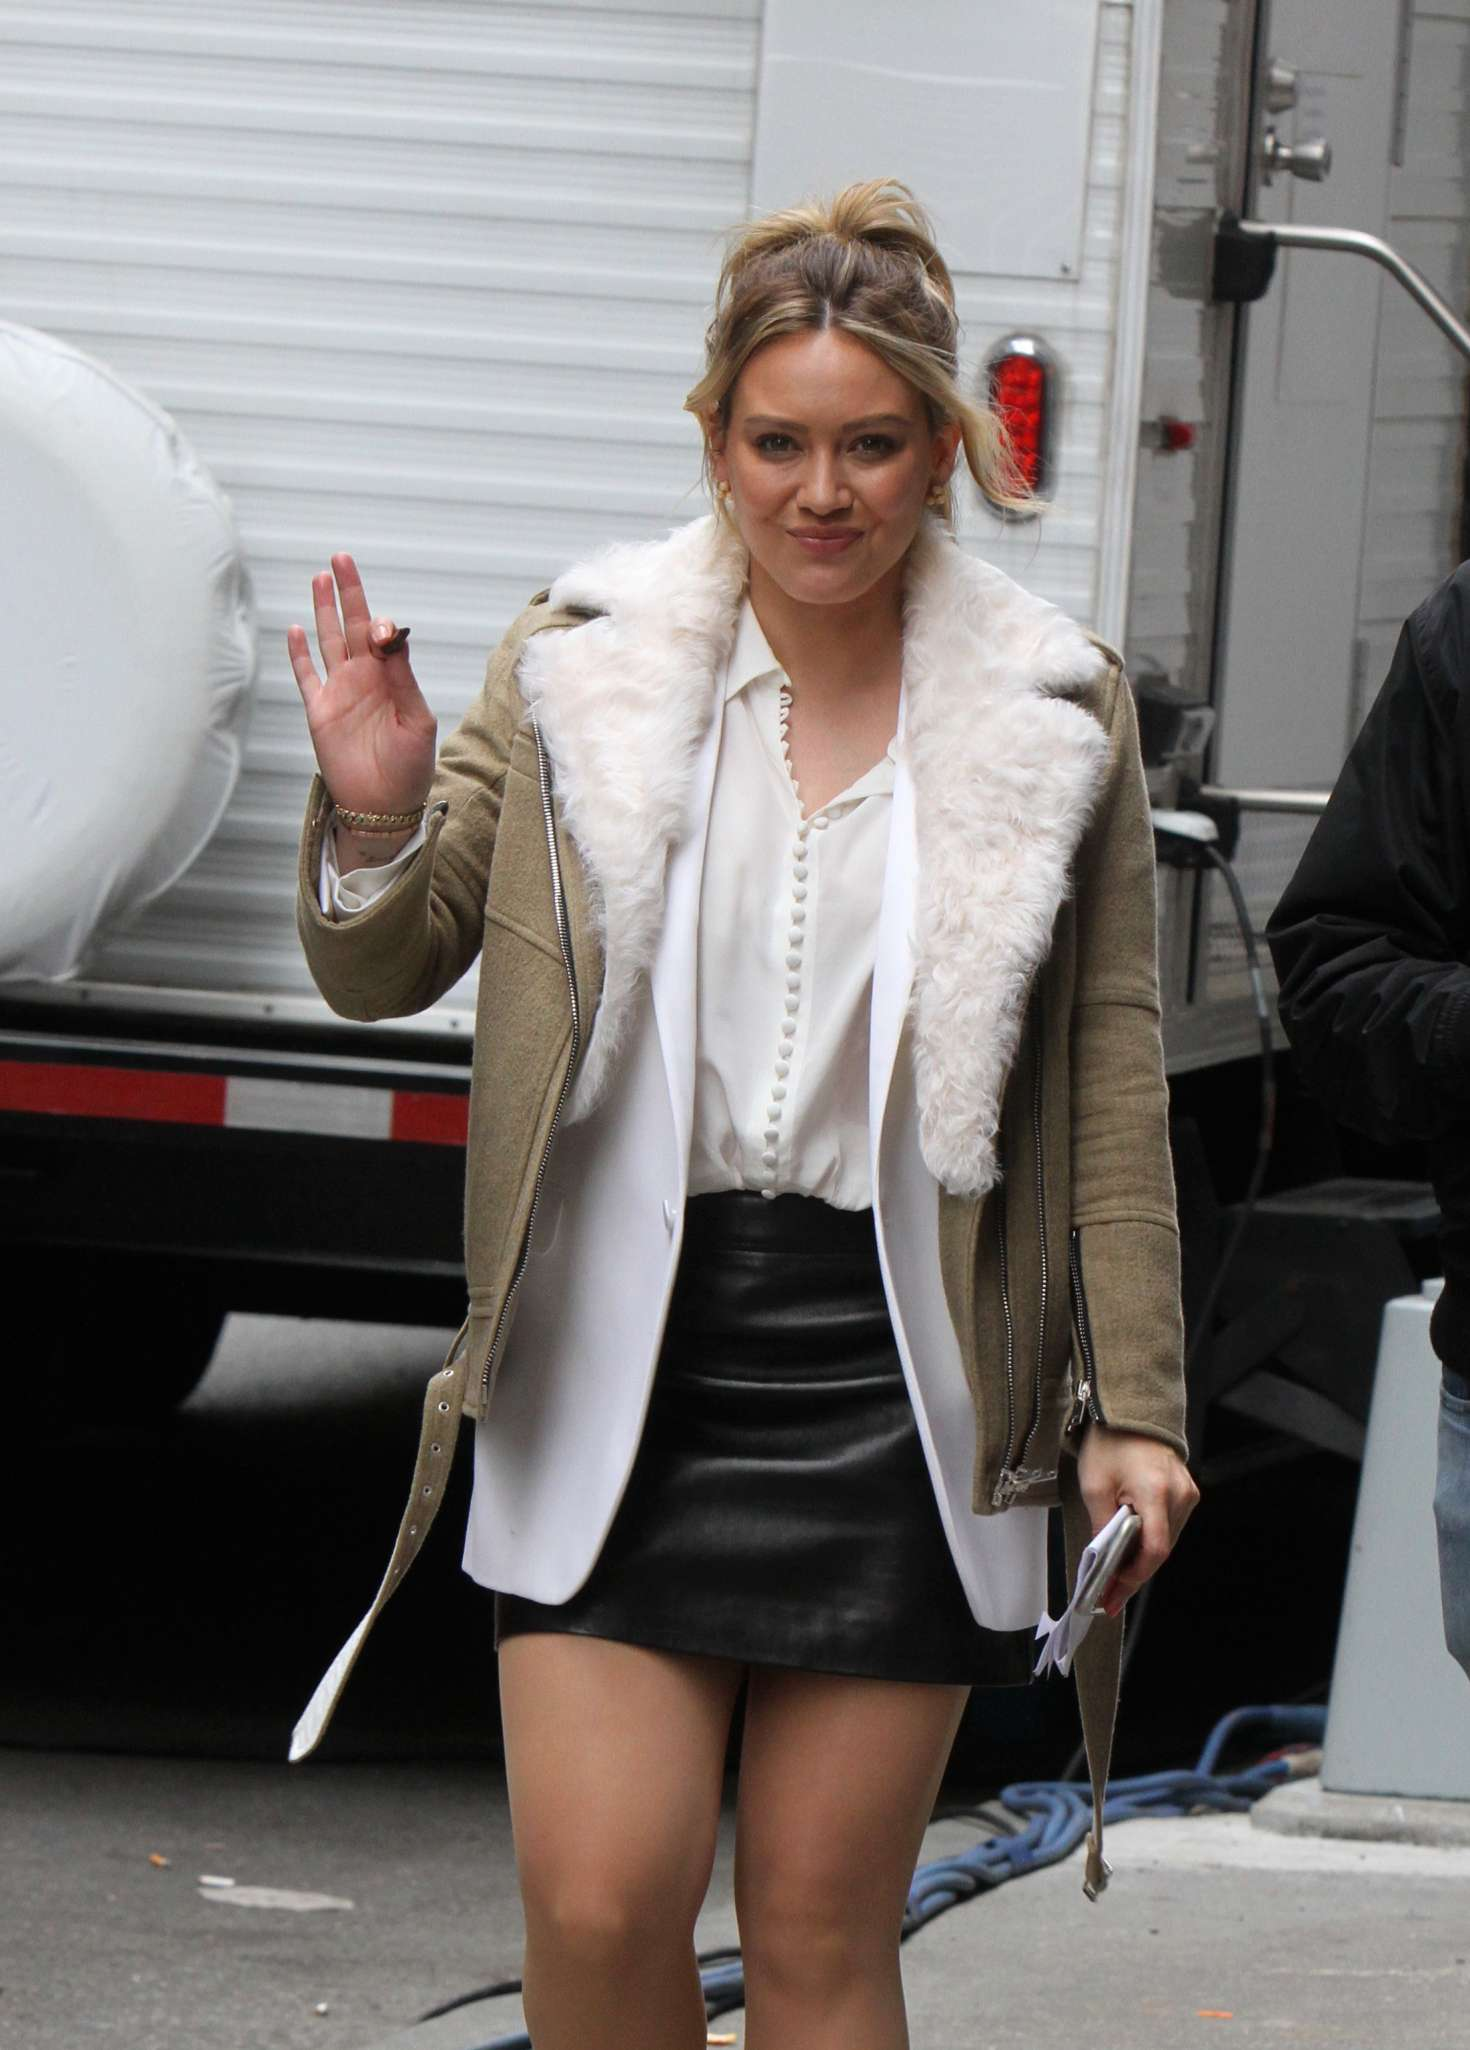 Hilary Duff in Mini Skirt - On the set of 'Younger' in NYC